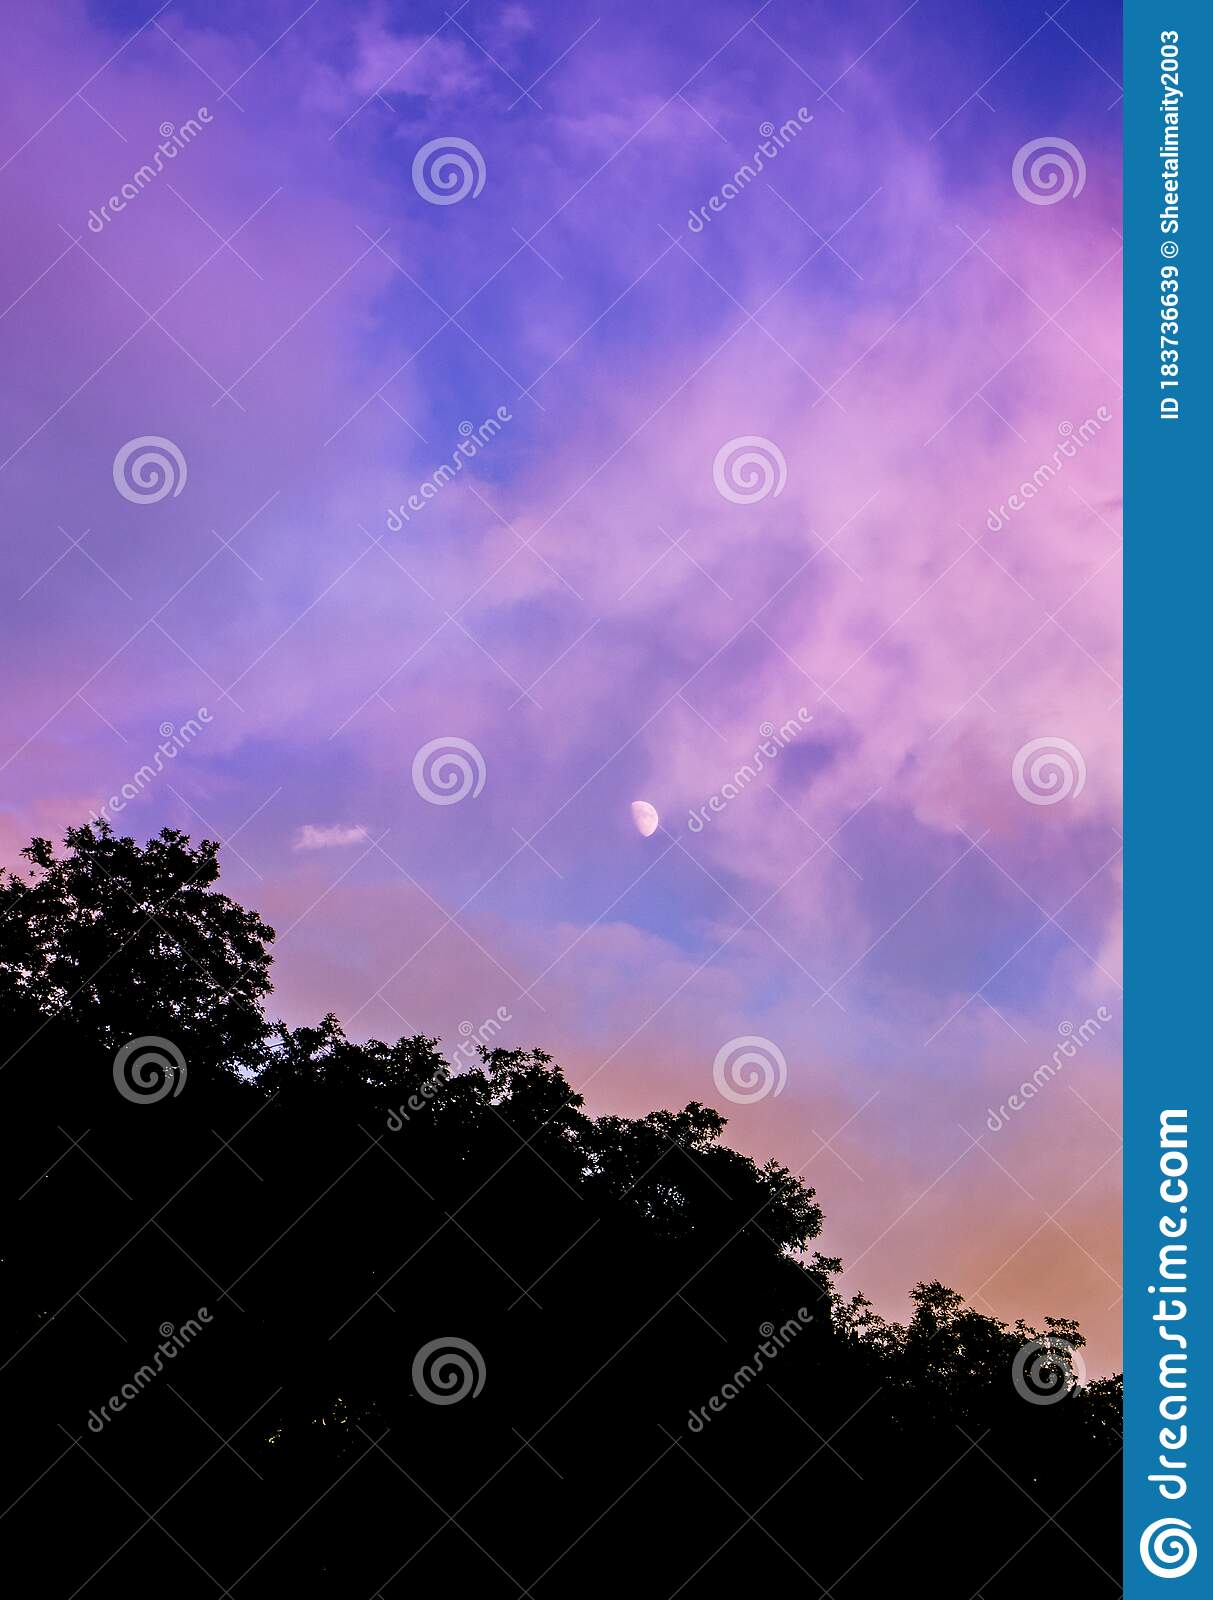 7 903 Purple Tree Silhouette Photos Free Royalty Free Stock Photos From Dreamstime